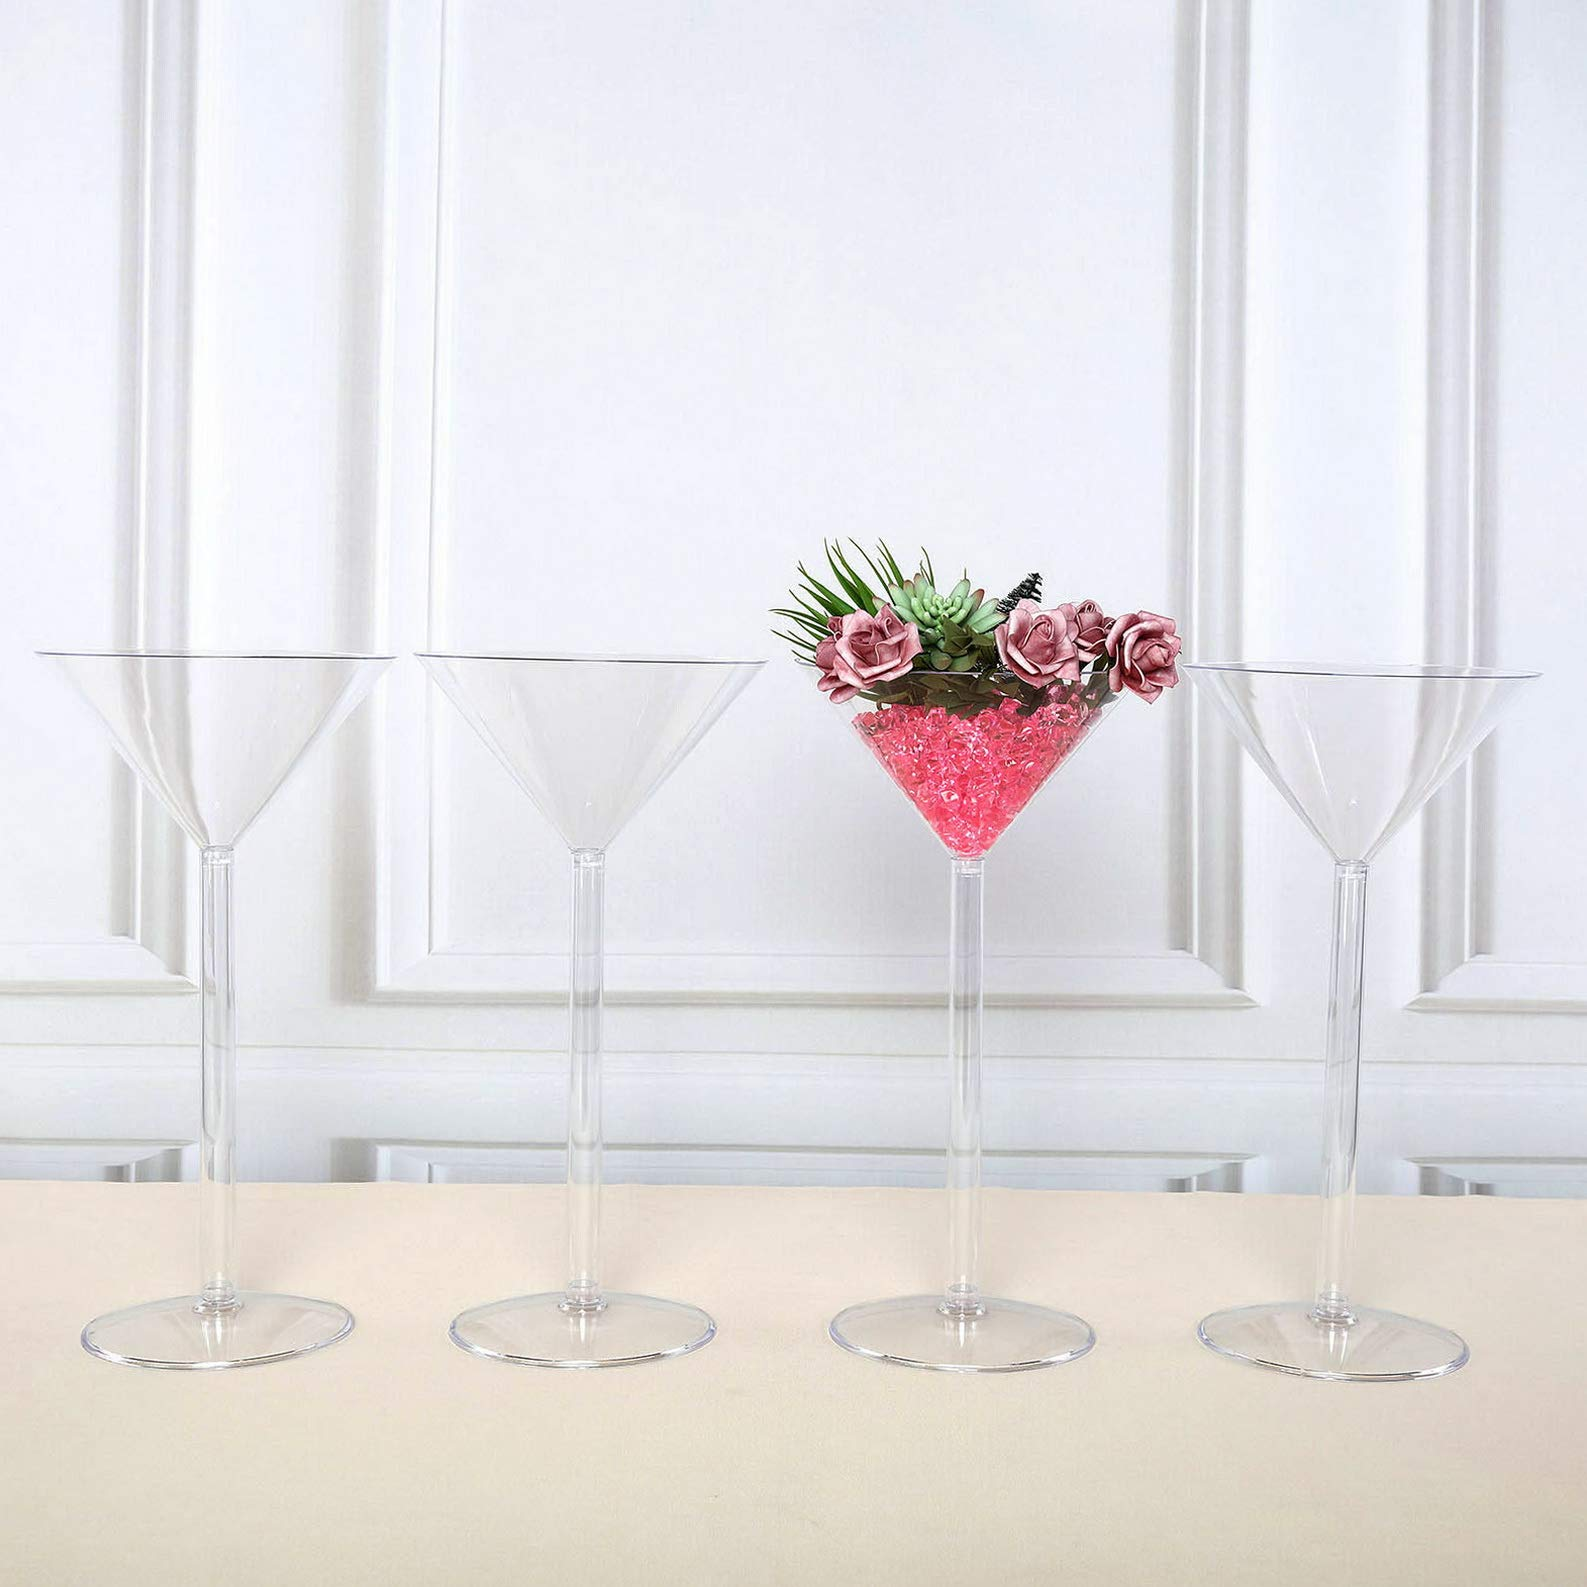 Mikash Clear Plastic Martini VASES Cups 18 Tall Wedding Party Centerpieces Decorations | Model WDDNGDCRTN - 6404 | 4 pcs